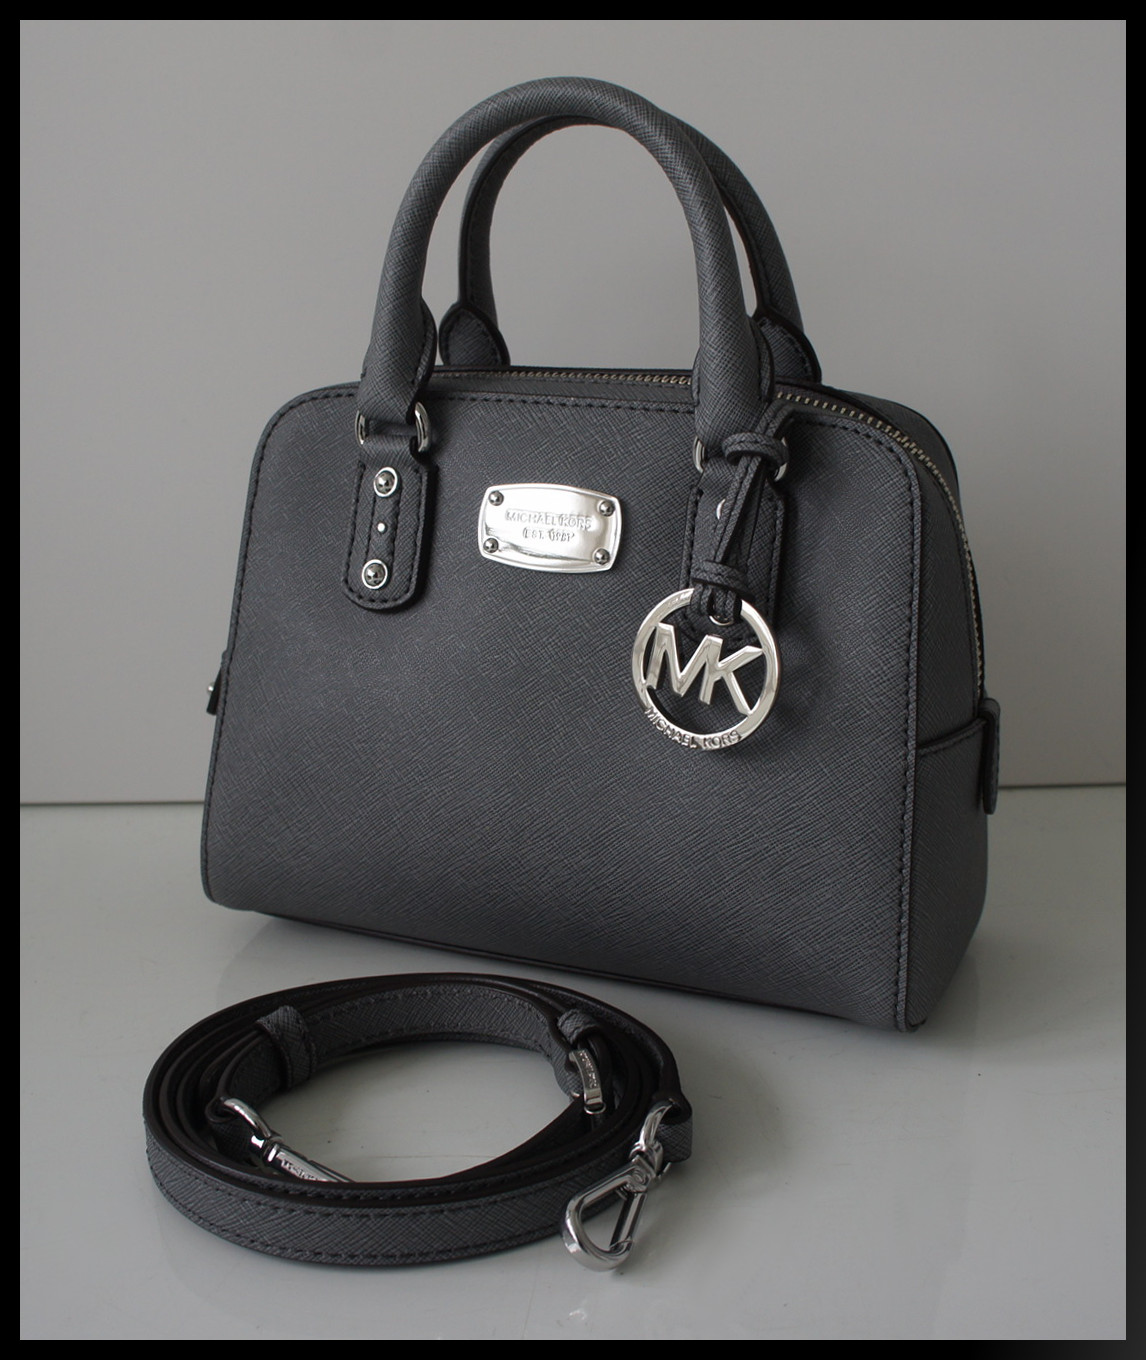 michael kors handtasche grau file michael kors selma lg tz satchel handtasche 25 best ideas. Black Bedroom Furniture Sets. Home Design Ideas